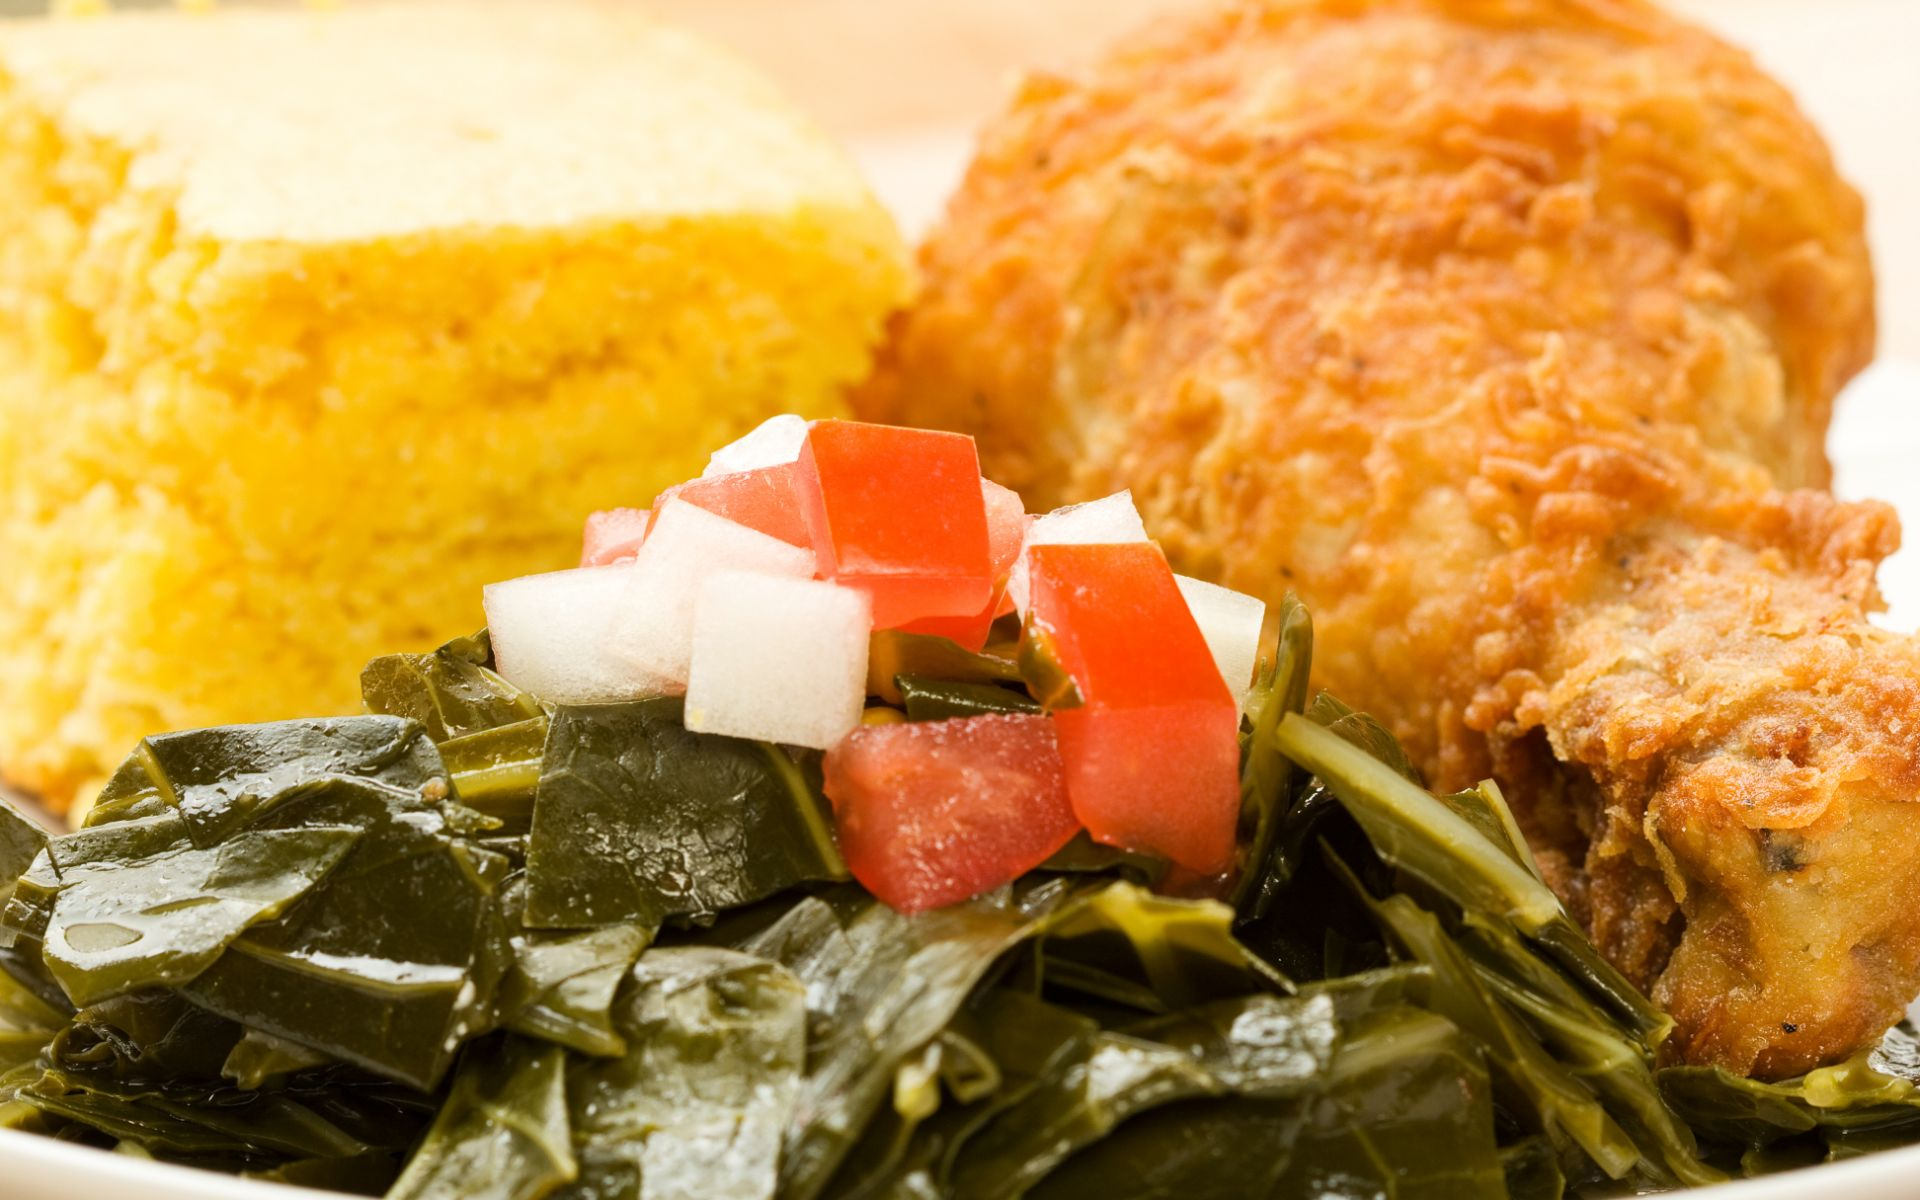 Fried Chicken with collard greens and cornbread